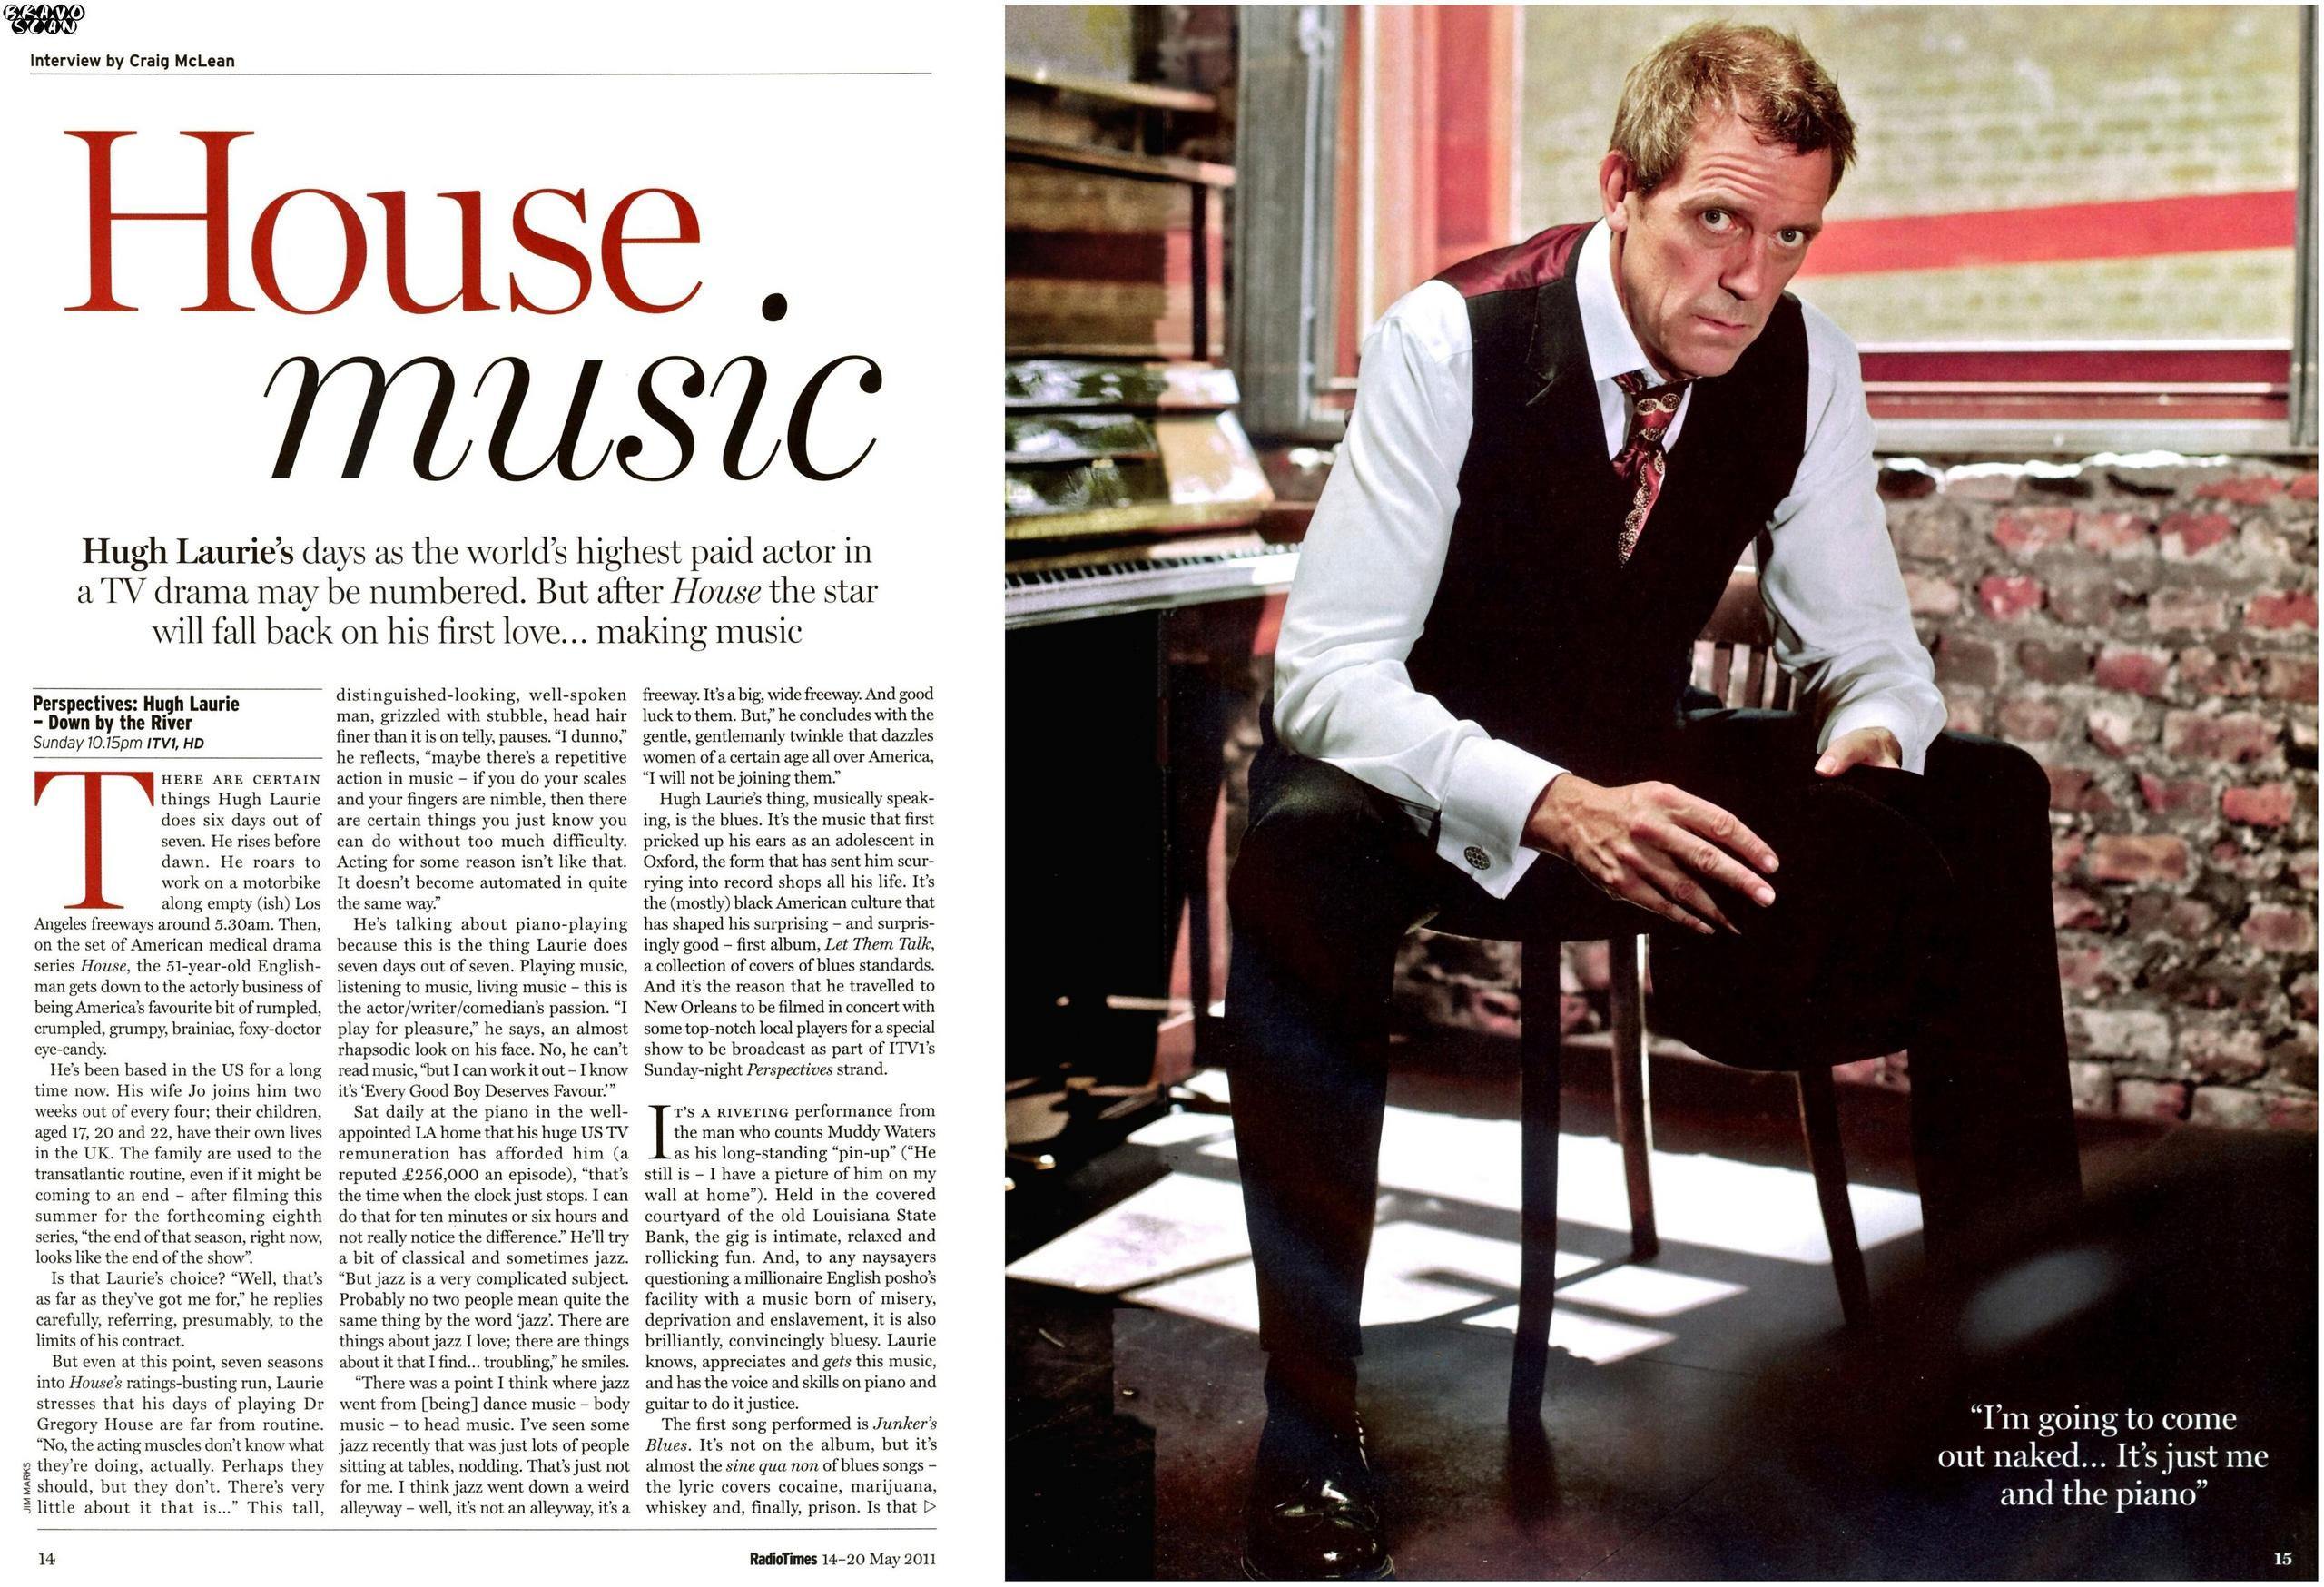 Hugh laurie news for Yt house music